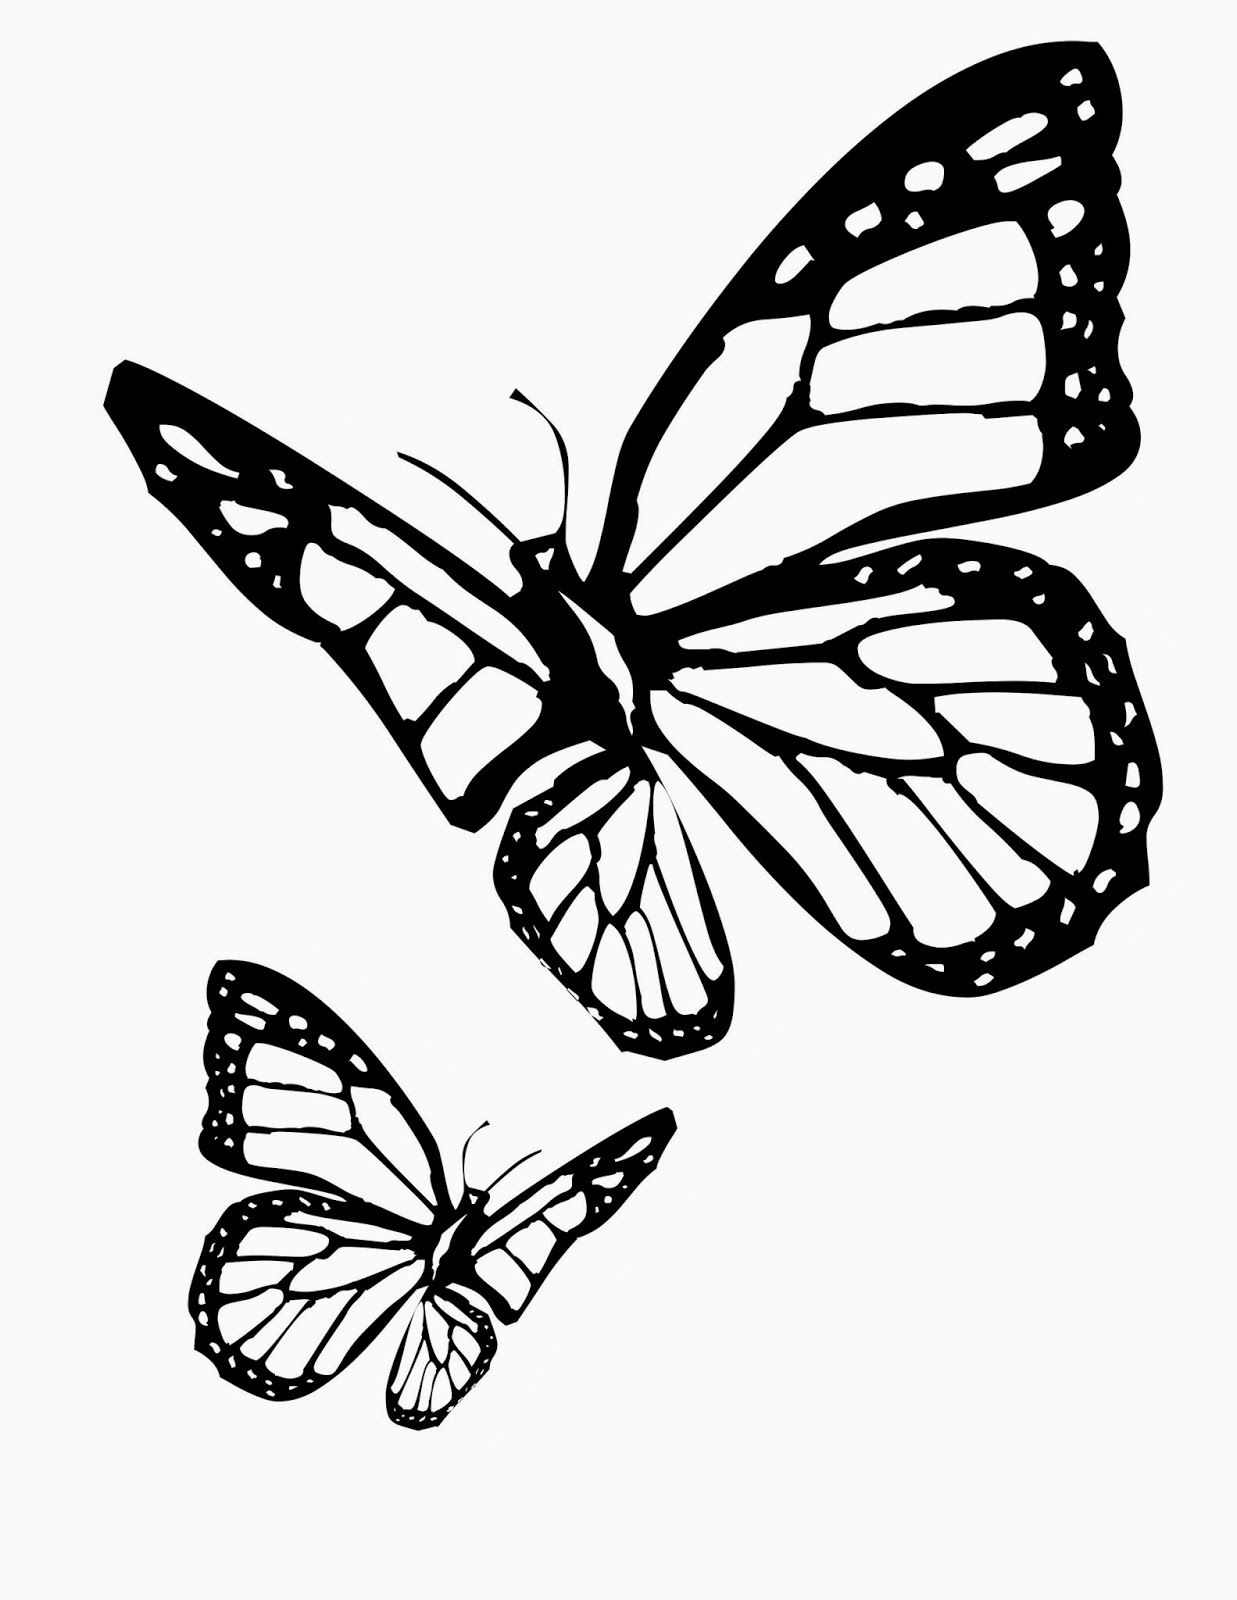 Butterfly tattoo stencils Butterfly tattoo stencil